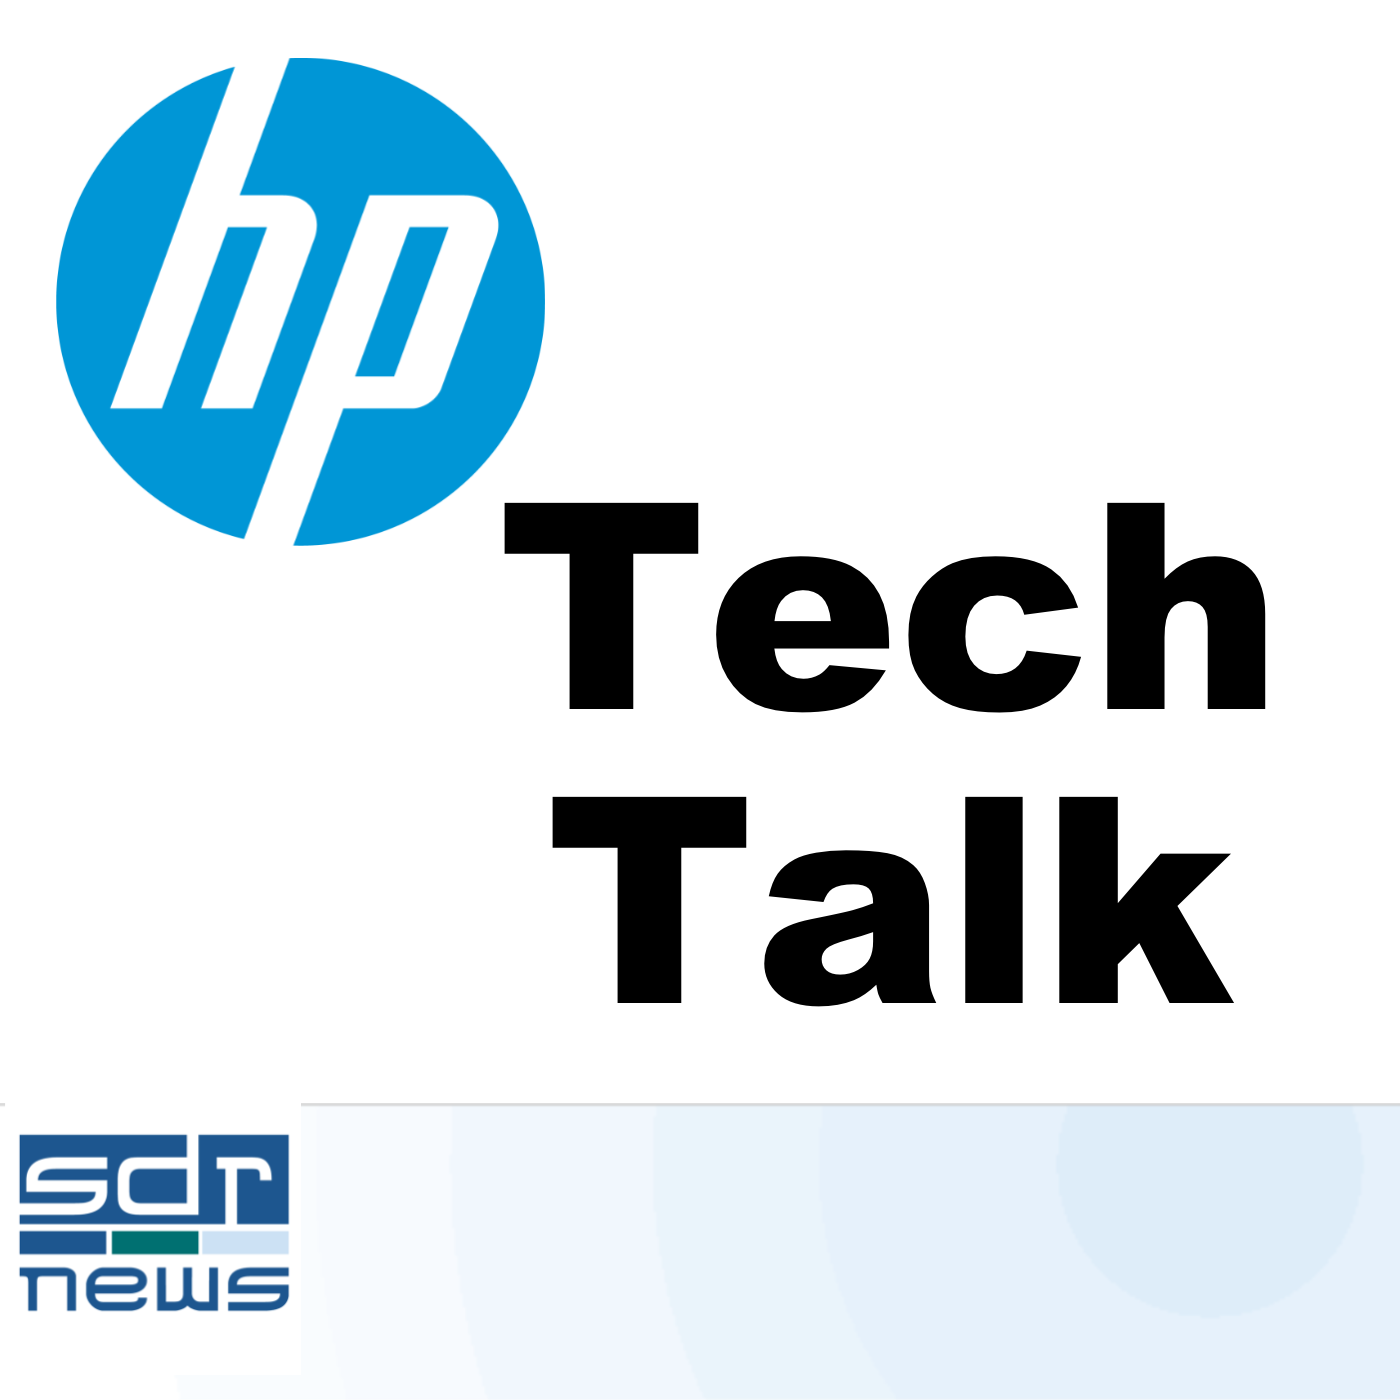 HP Tech Talk – SDRNews